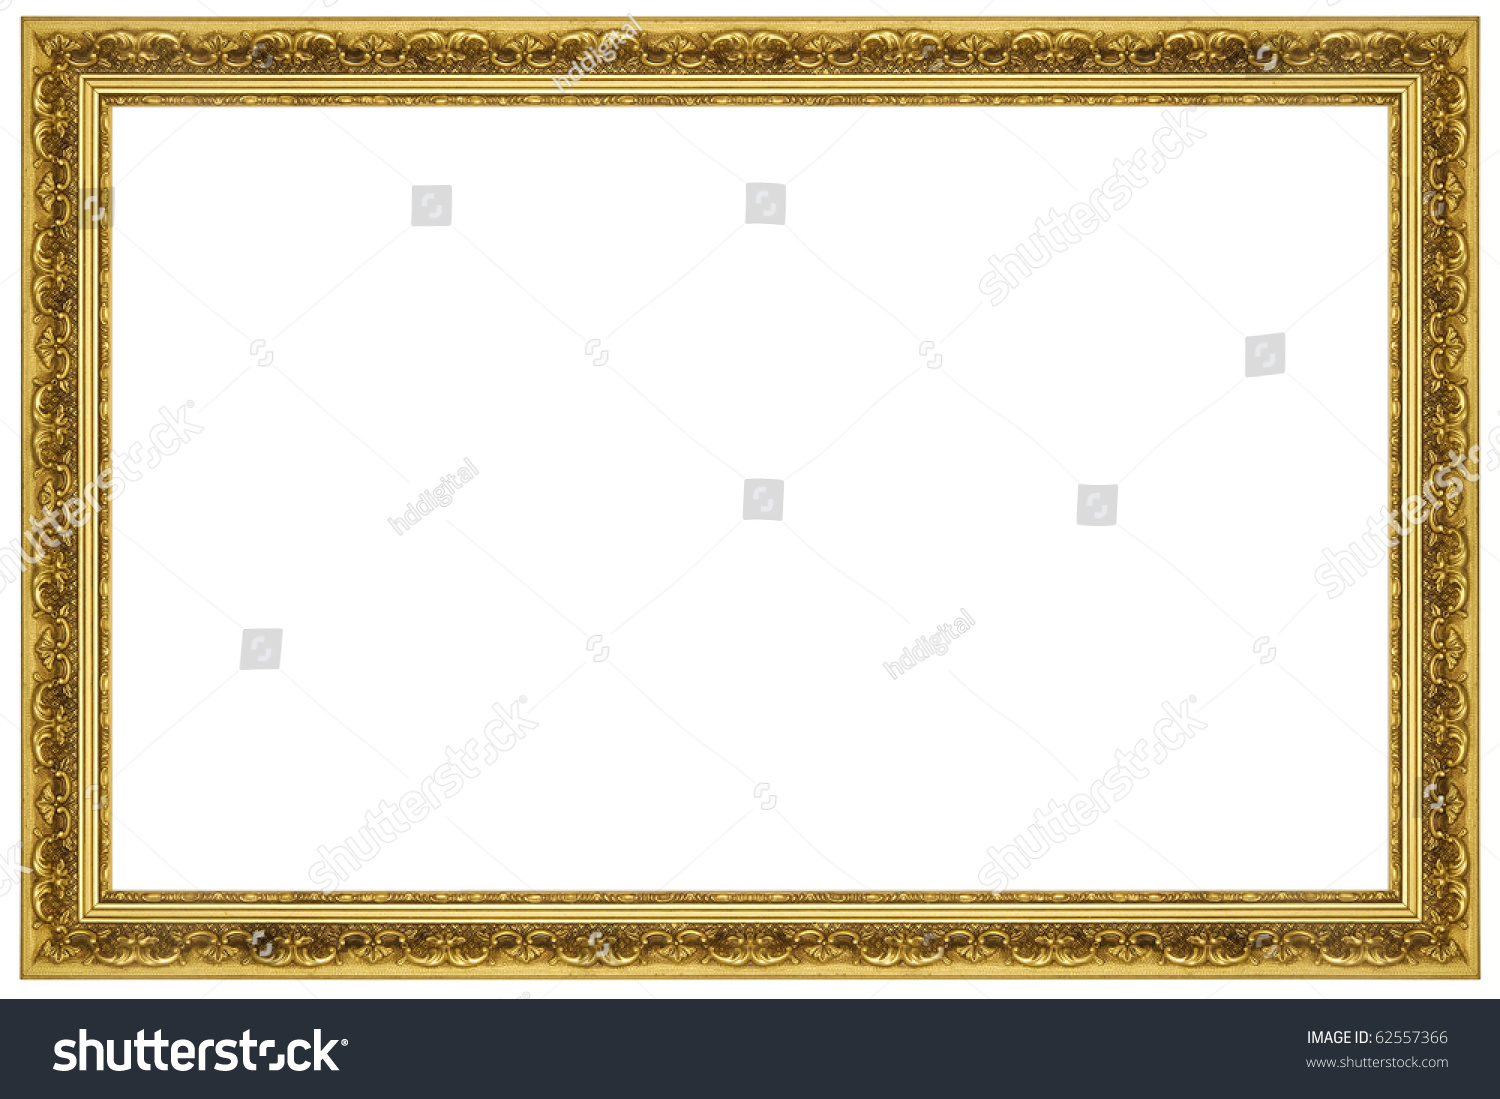 ornate gold frame